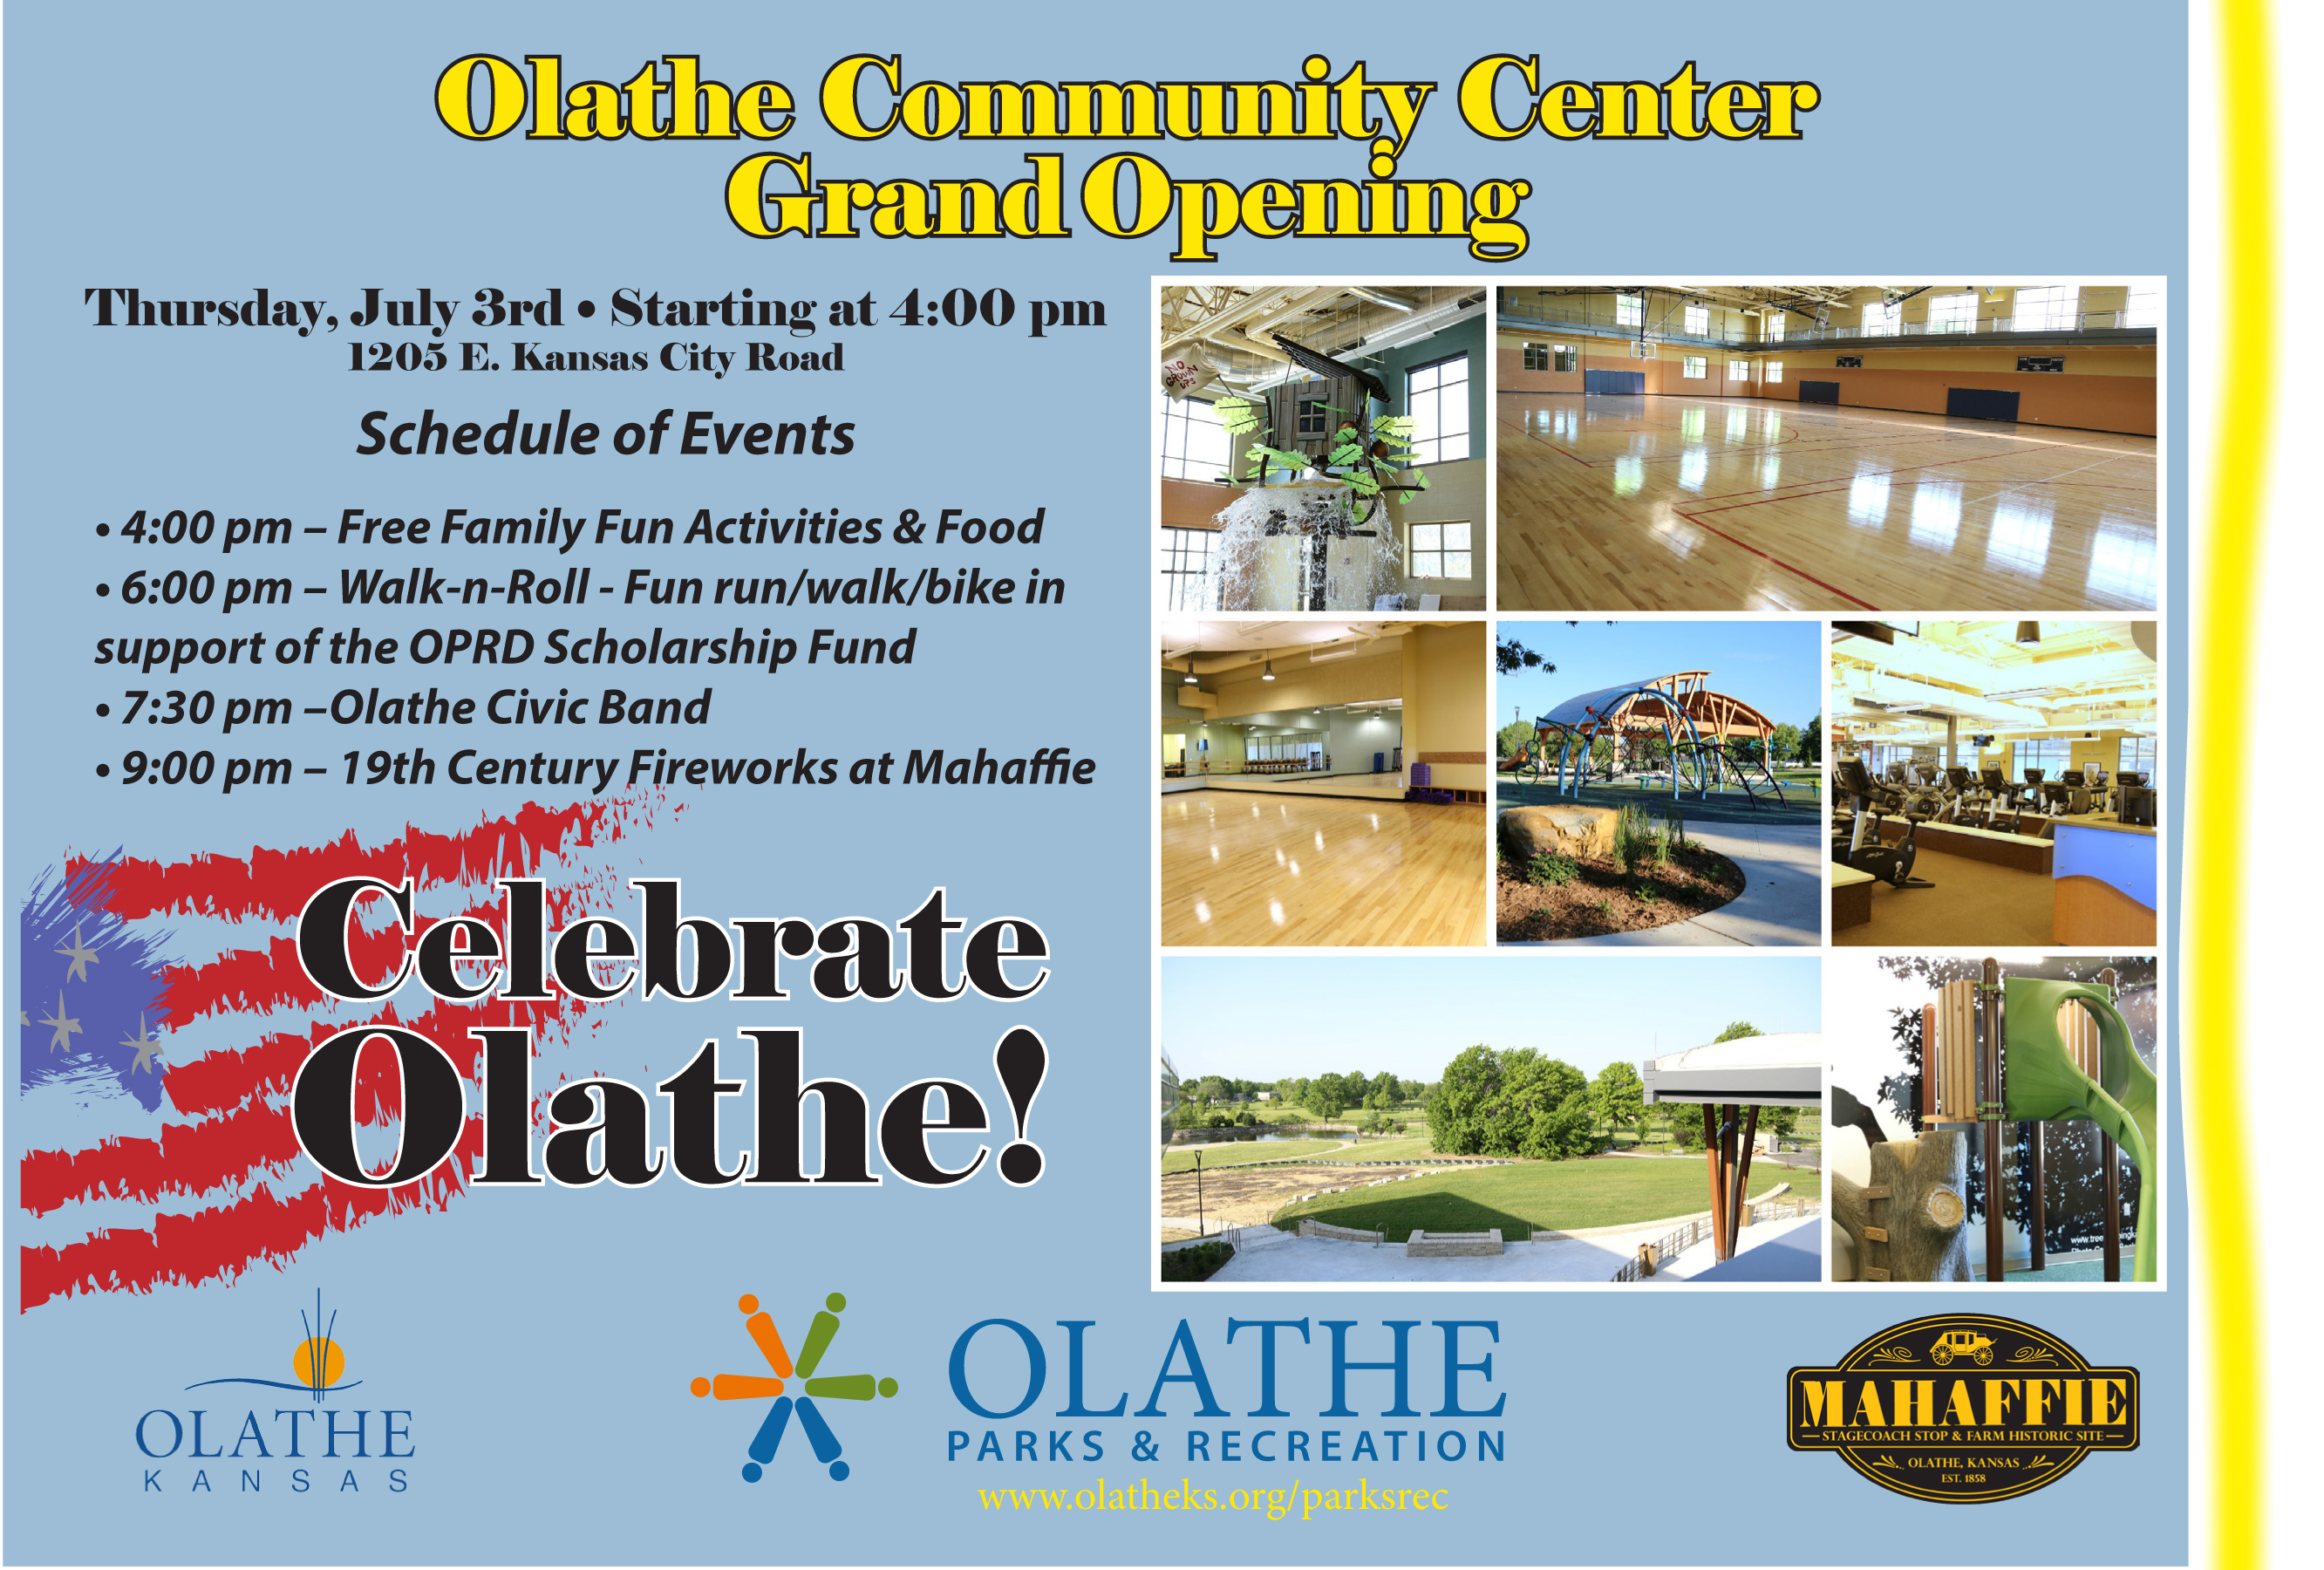 Olathe Community Center Family Fun Event